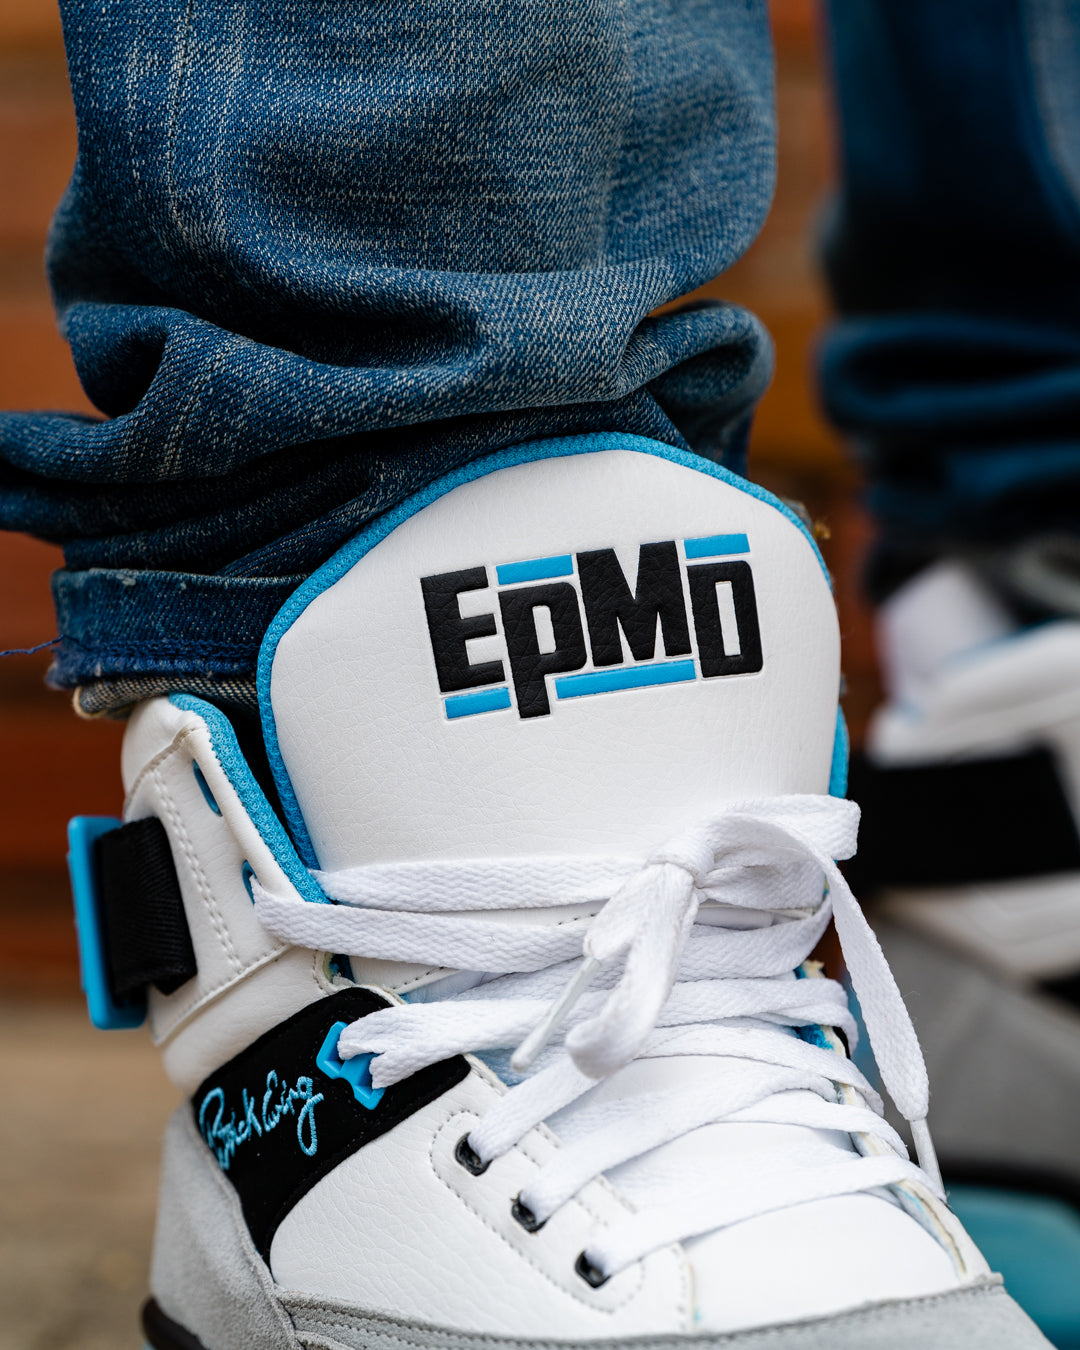 Ewing 33 Hi Unfinished Business EPMD tongue